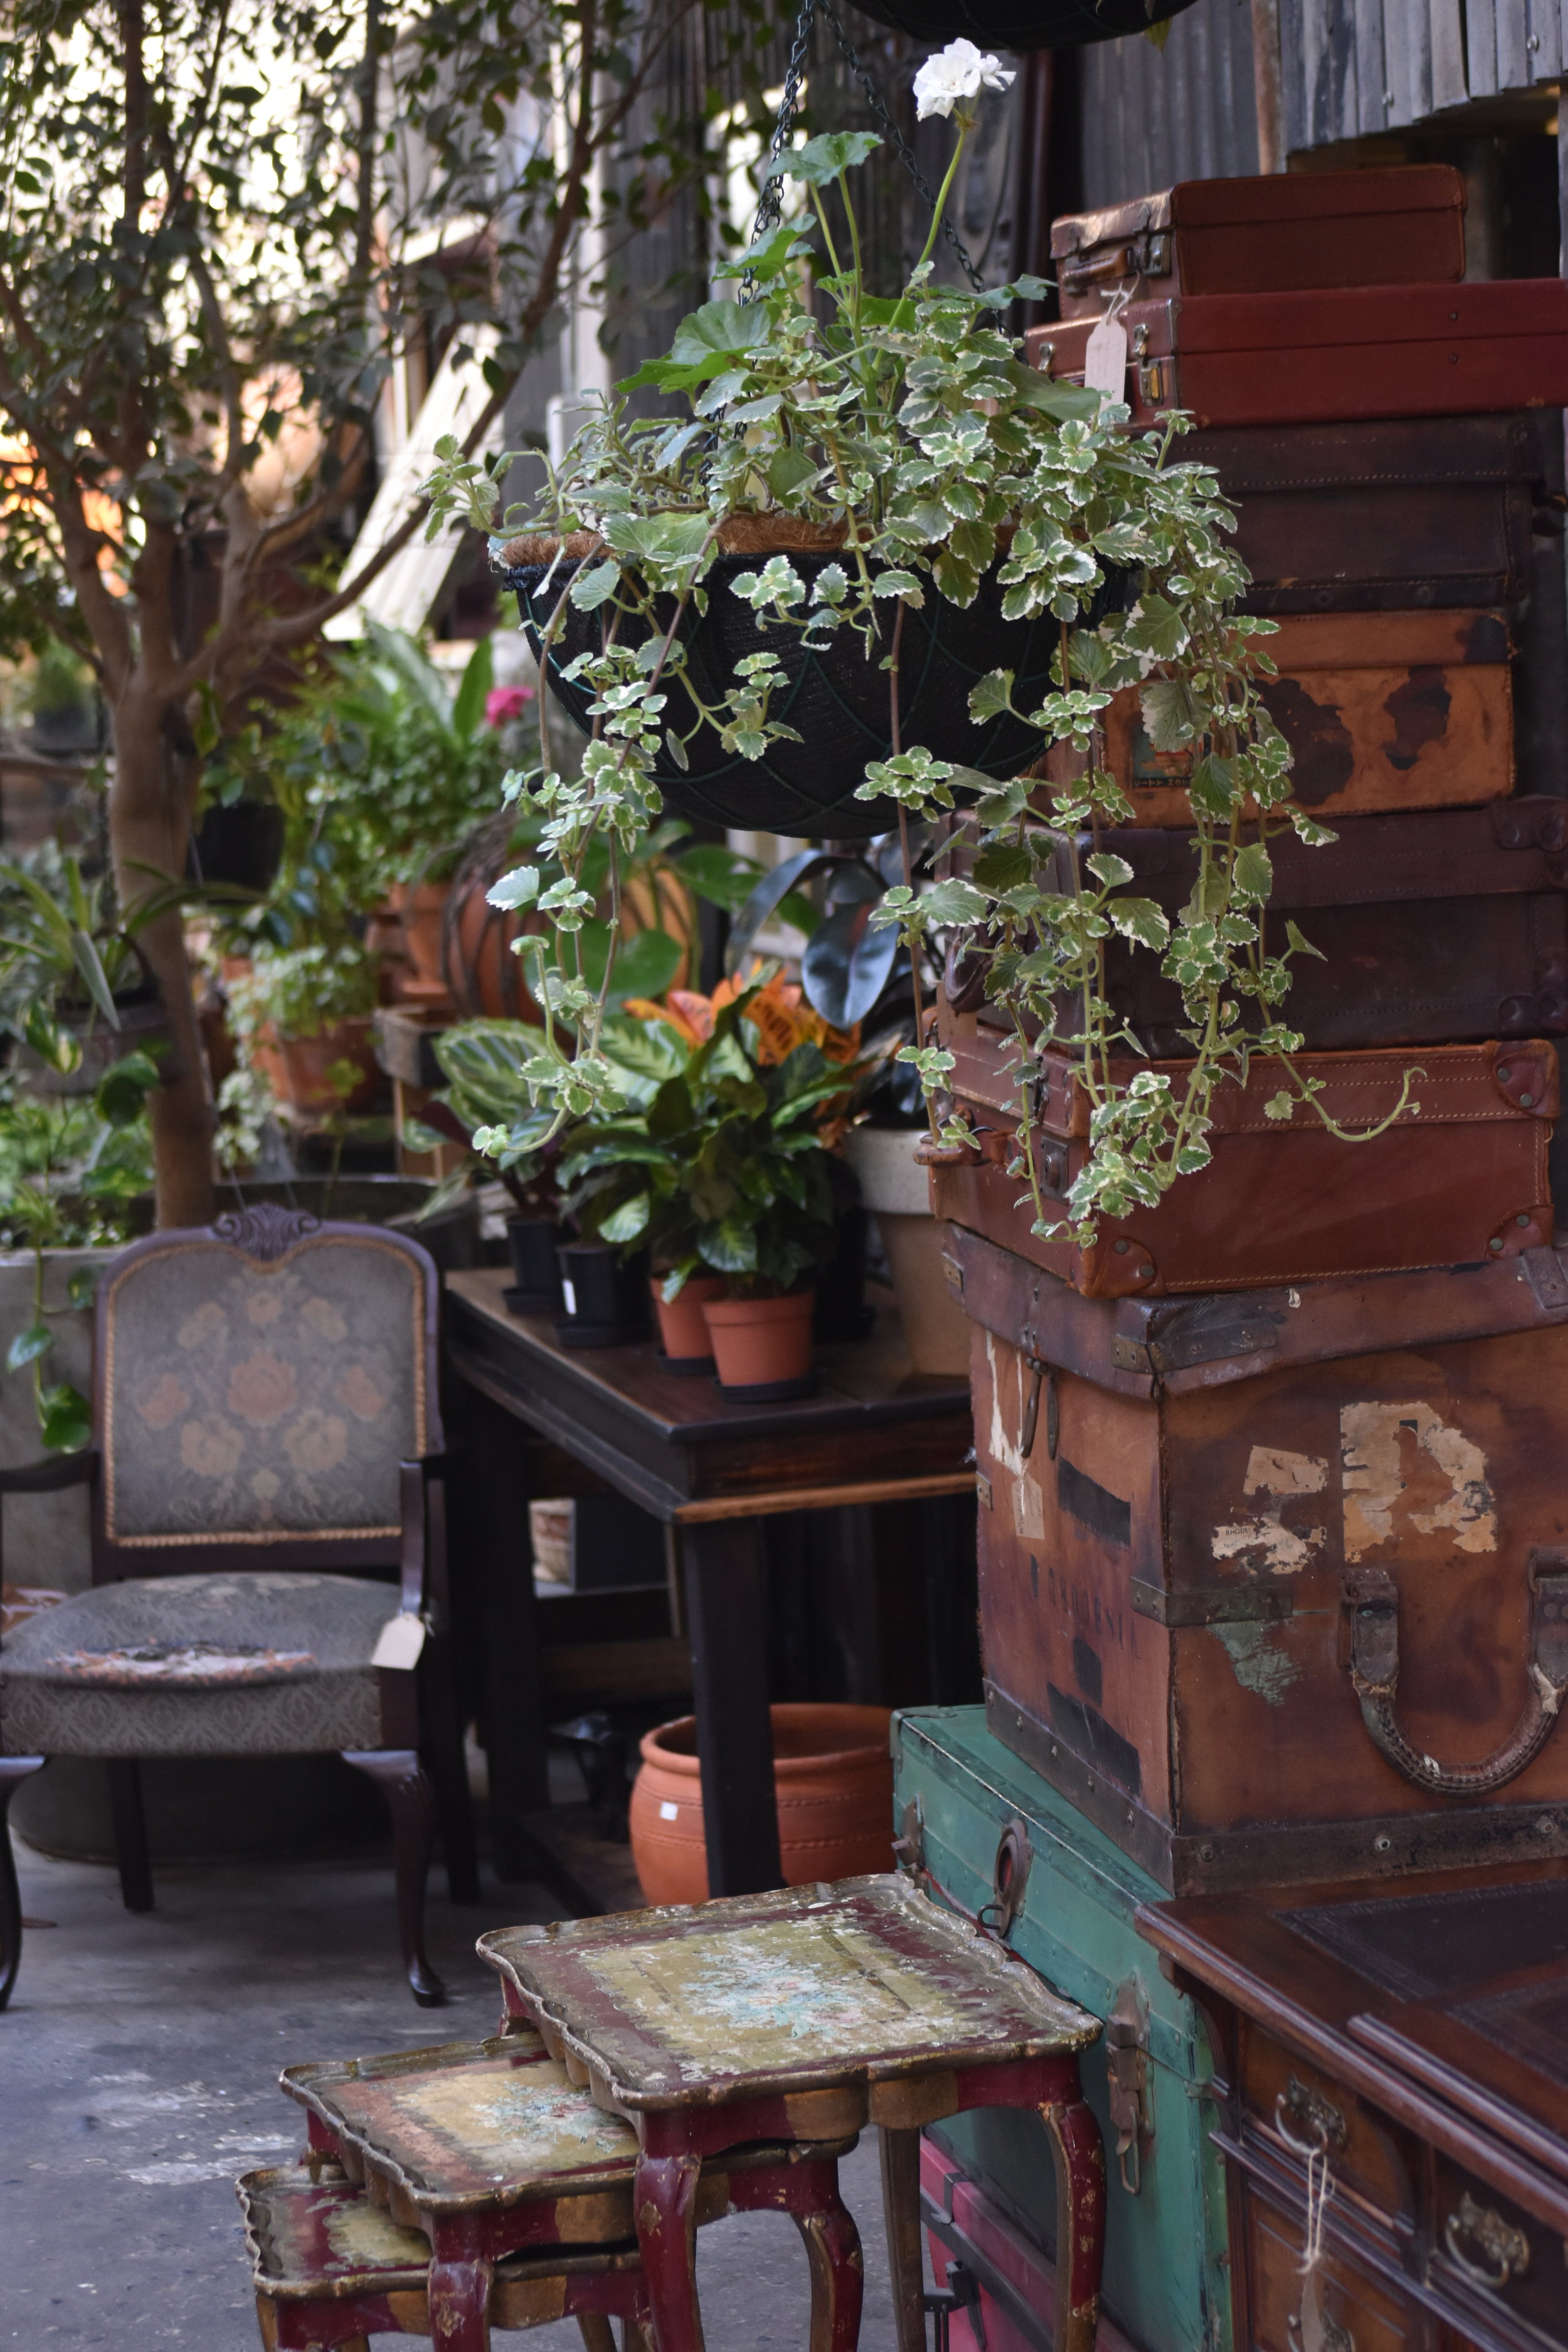 Trunks and plants at Yours Truly Cafe at 117 Kloof